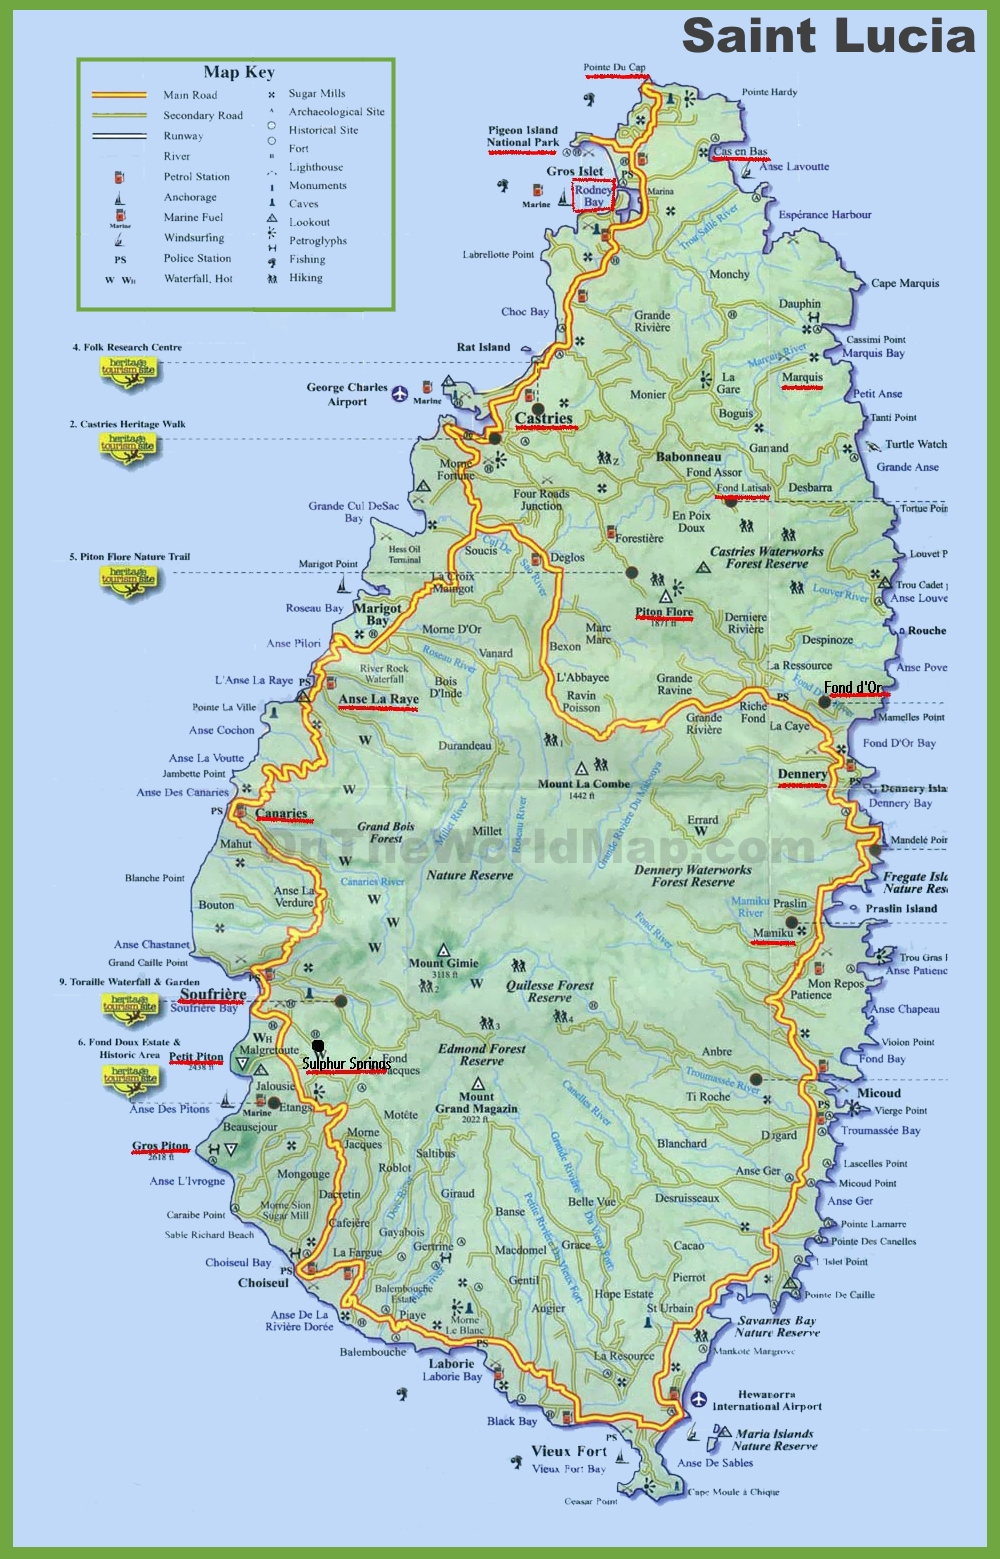 Saint Lucia island Maps Maps of Saint Lucia